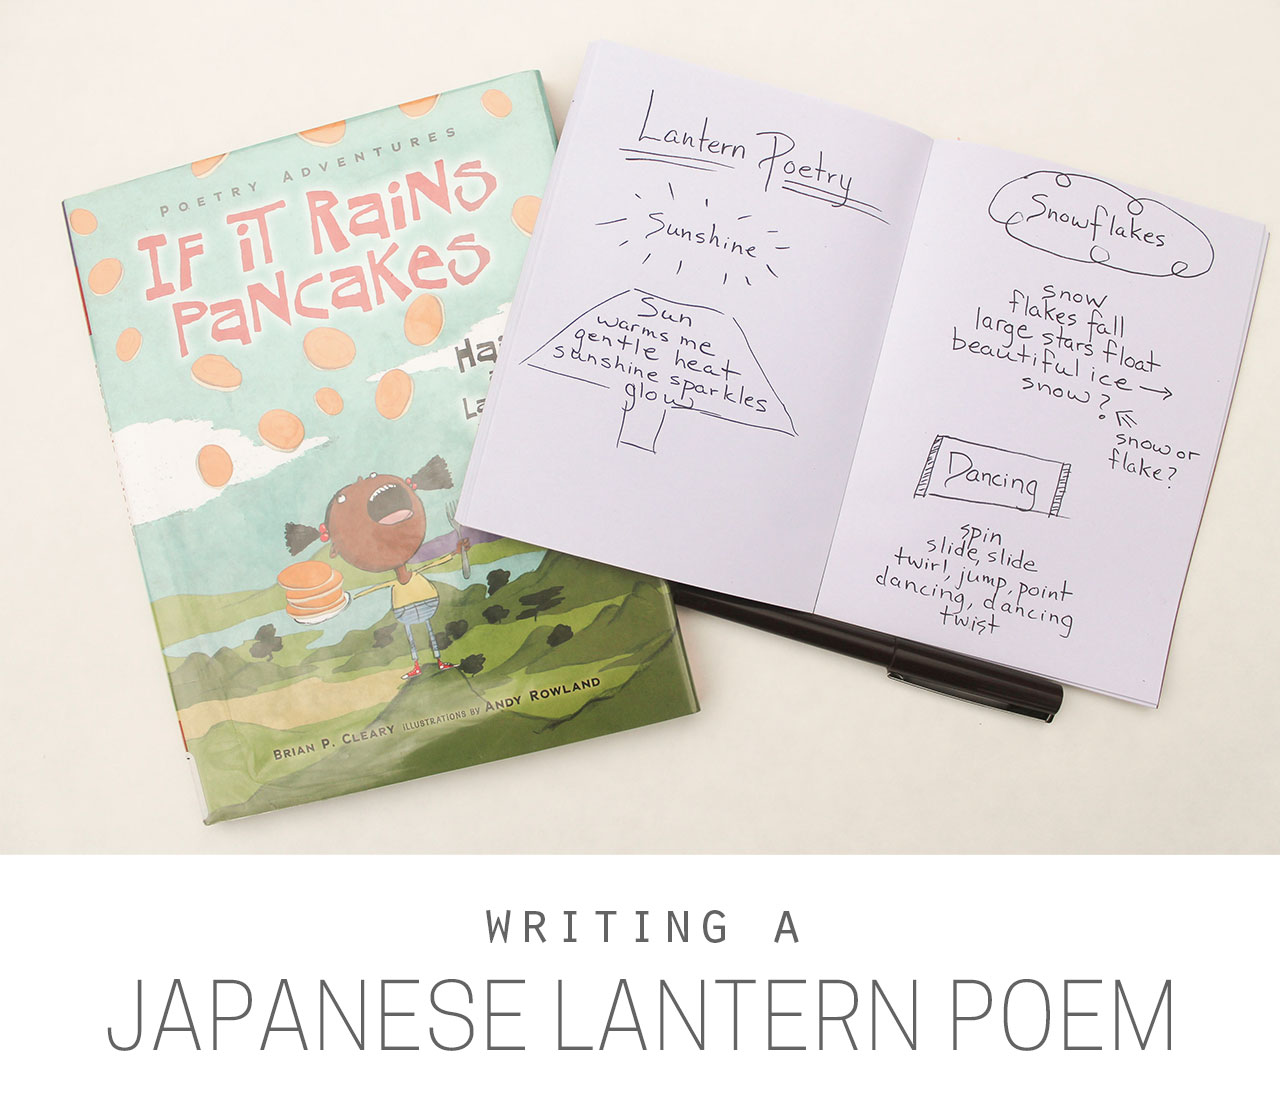 writing a japanese lantern poem